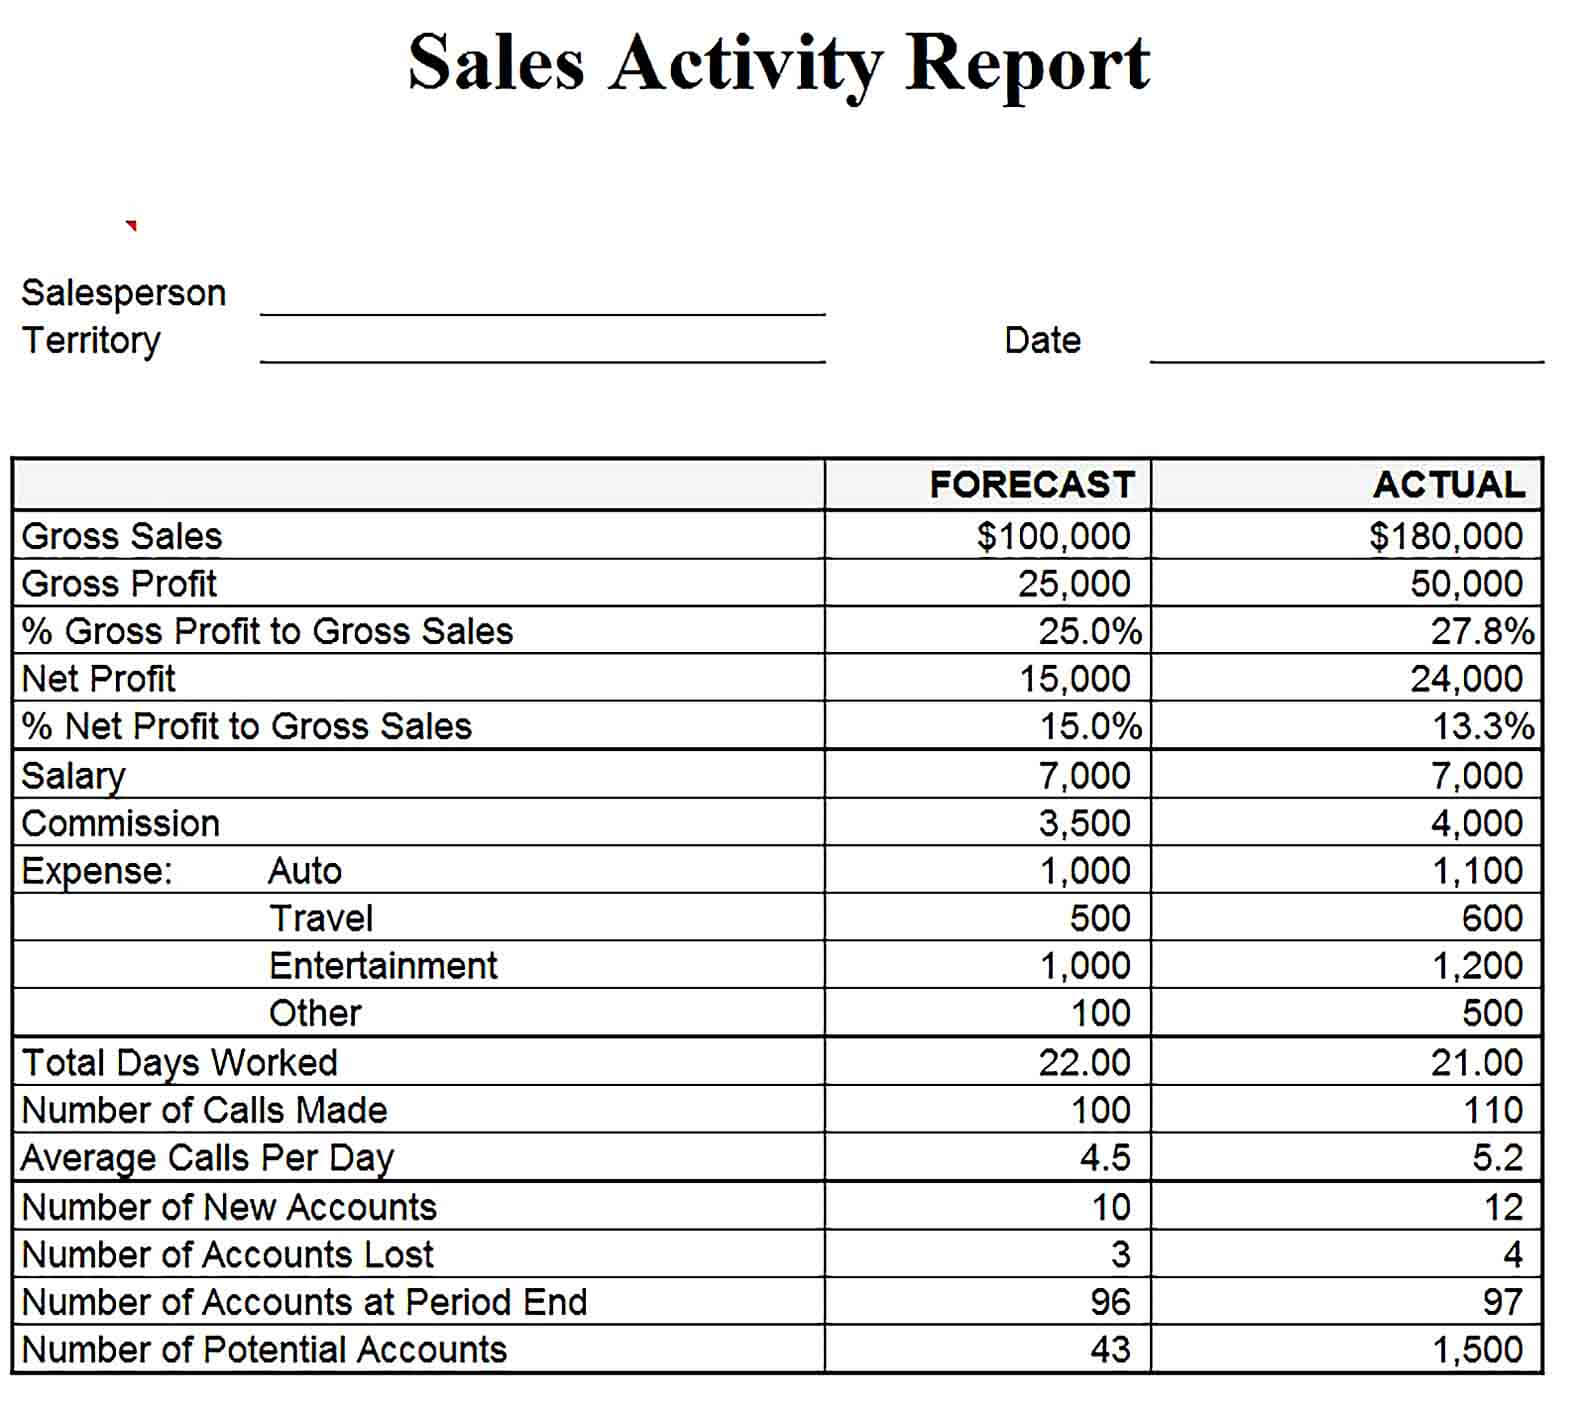 Sample Sales Activity Report Excel Template